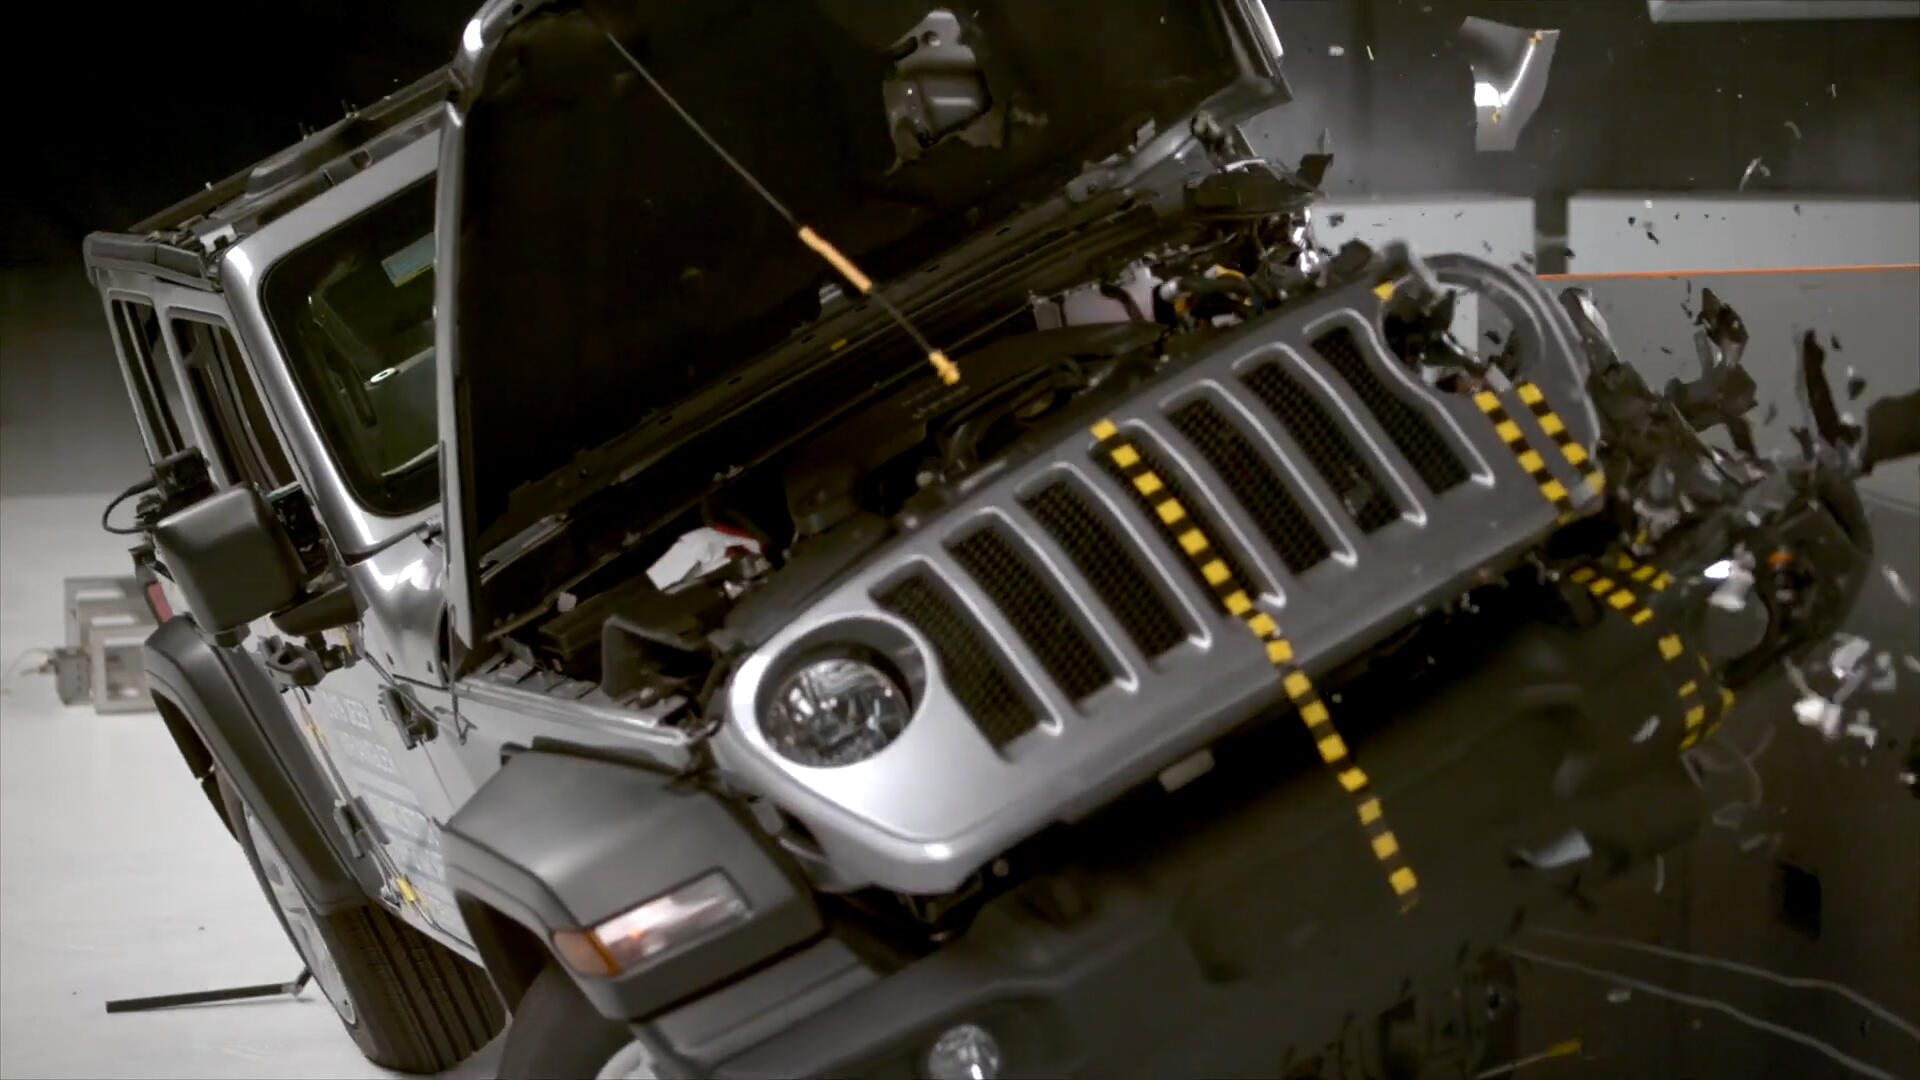 Video: Jeep Wrangler rolls during IIHS crash test